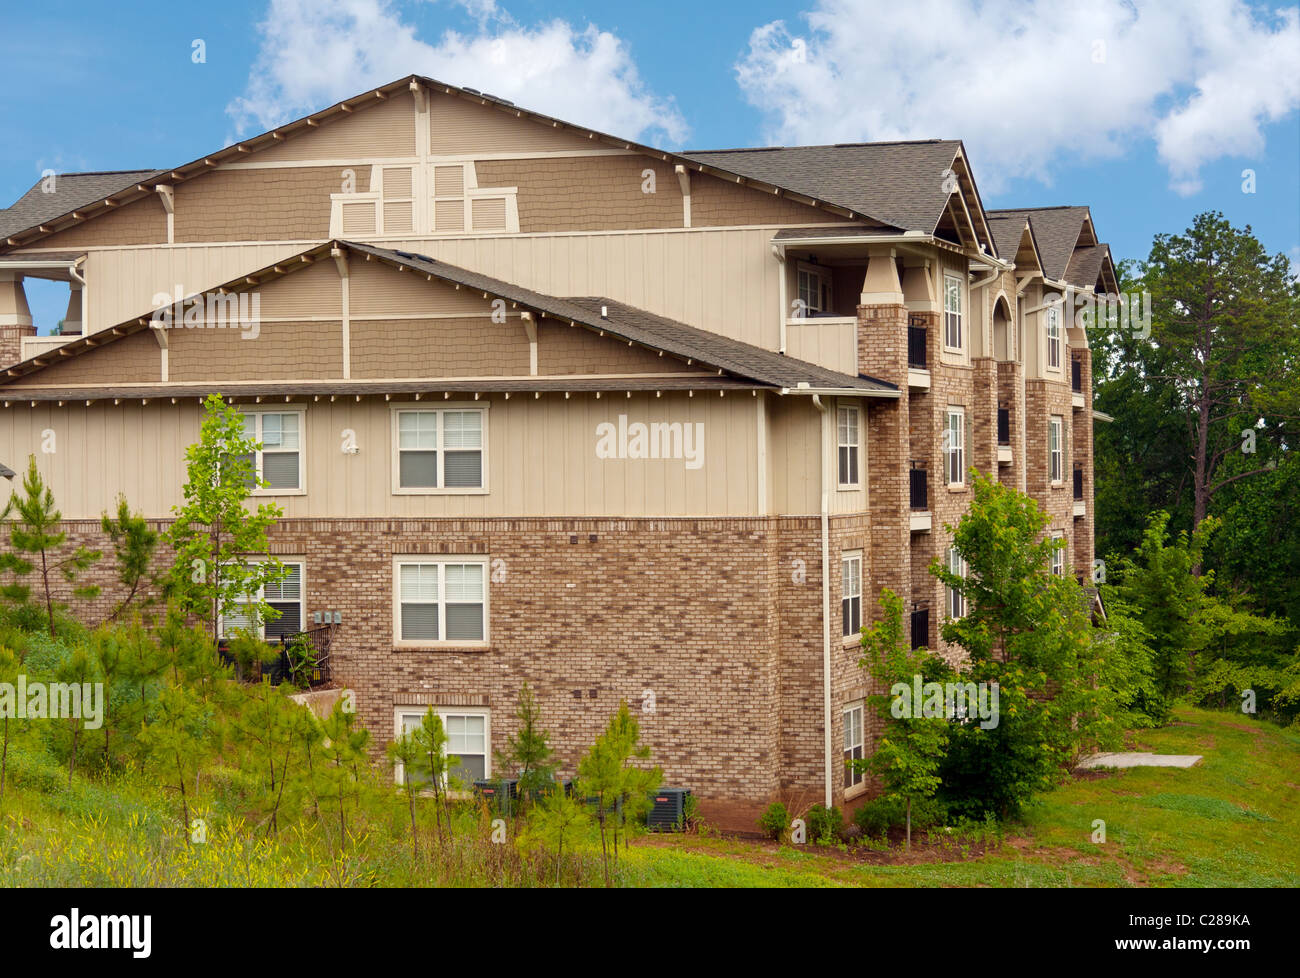 Side view of newly built condominium buildings. - Stock Image